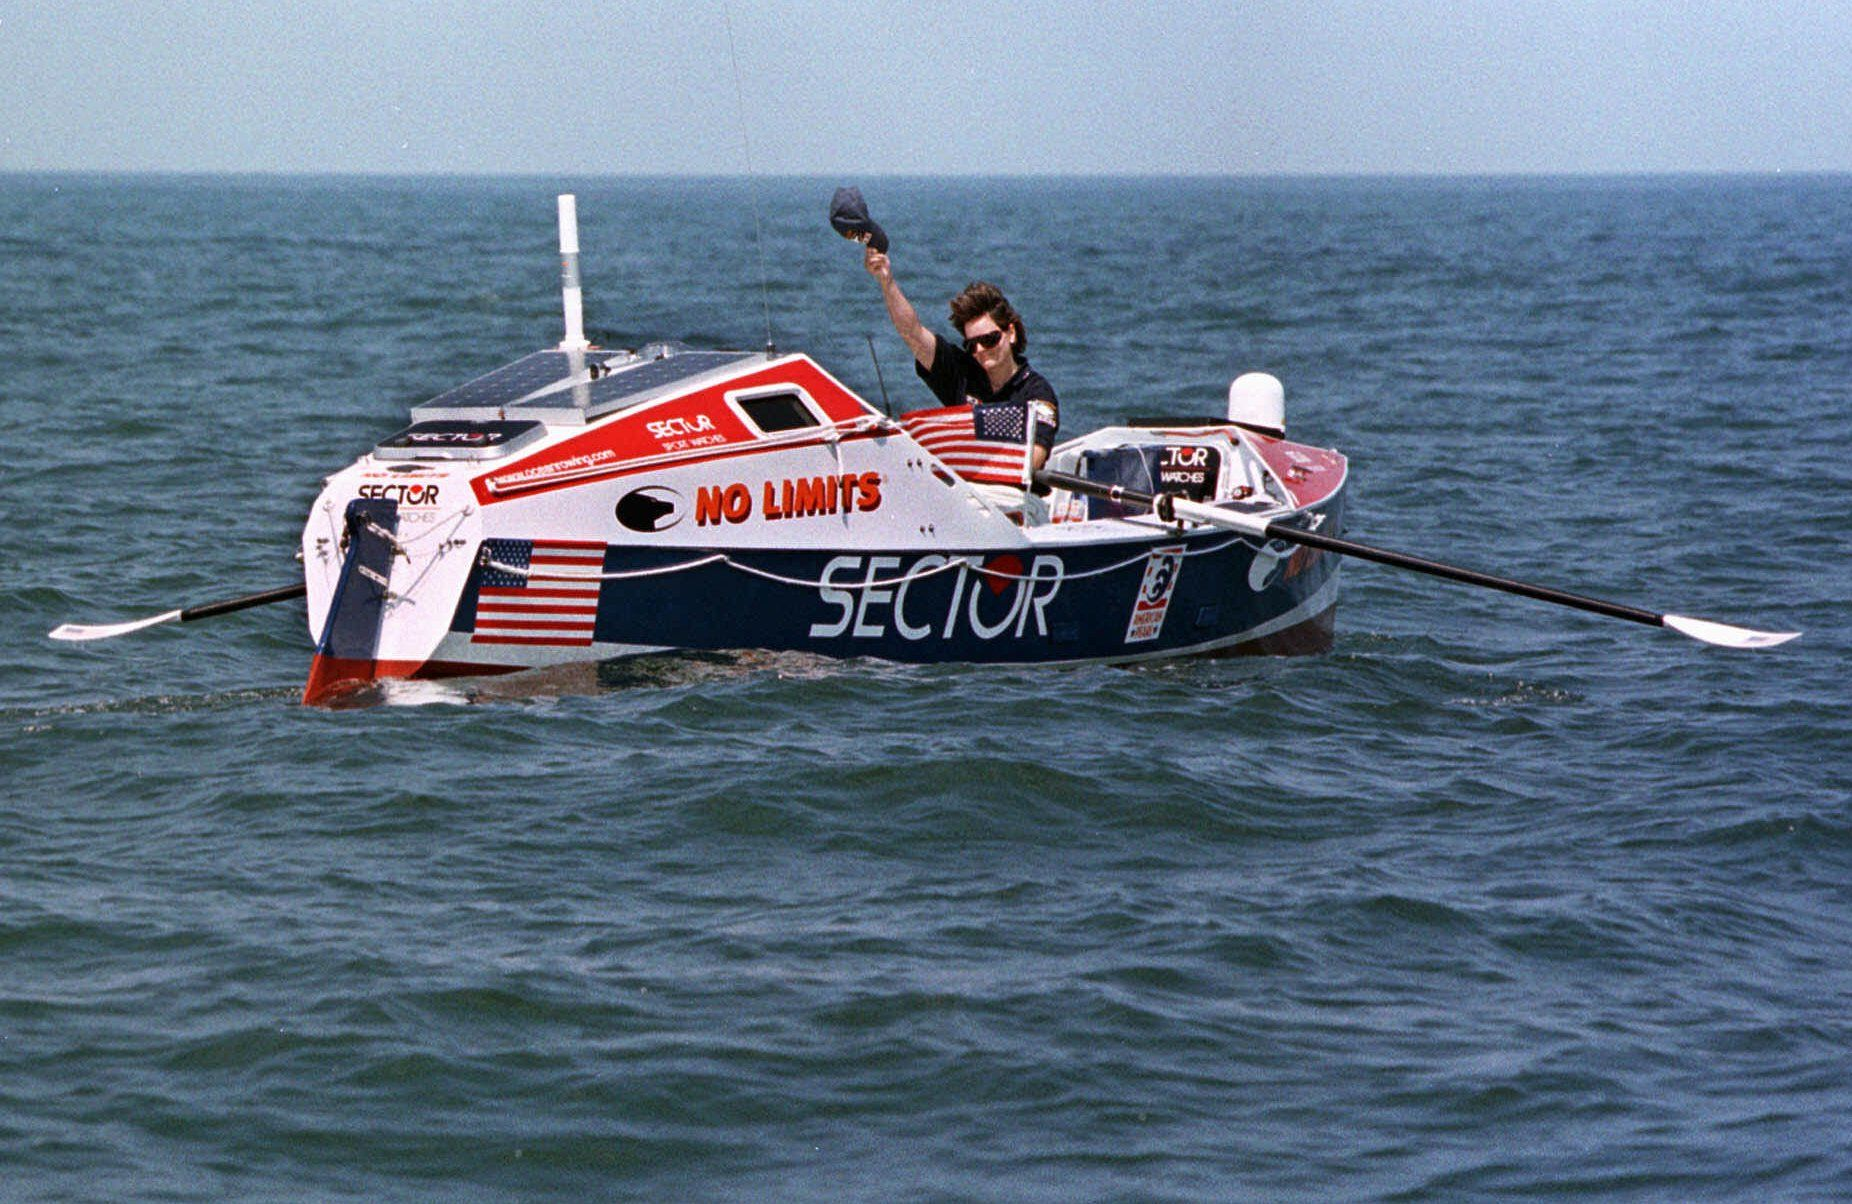 Tori Murden, of Louisville, Ky., attempting to become the first American and first woman to row solo across the North Atlantic Ocean, waves her hat as she hits open water Sunday, June 14, 1998, off North Carolina's Outer Banks, near Nags Head, N.C. Murden hopes to row 3, 635 miles as the crow flies and make the French coast in mid-September. (AP Photo/Bob Jordan)